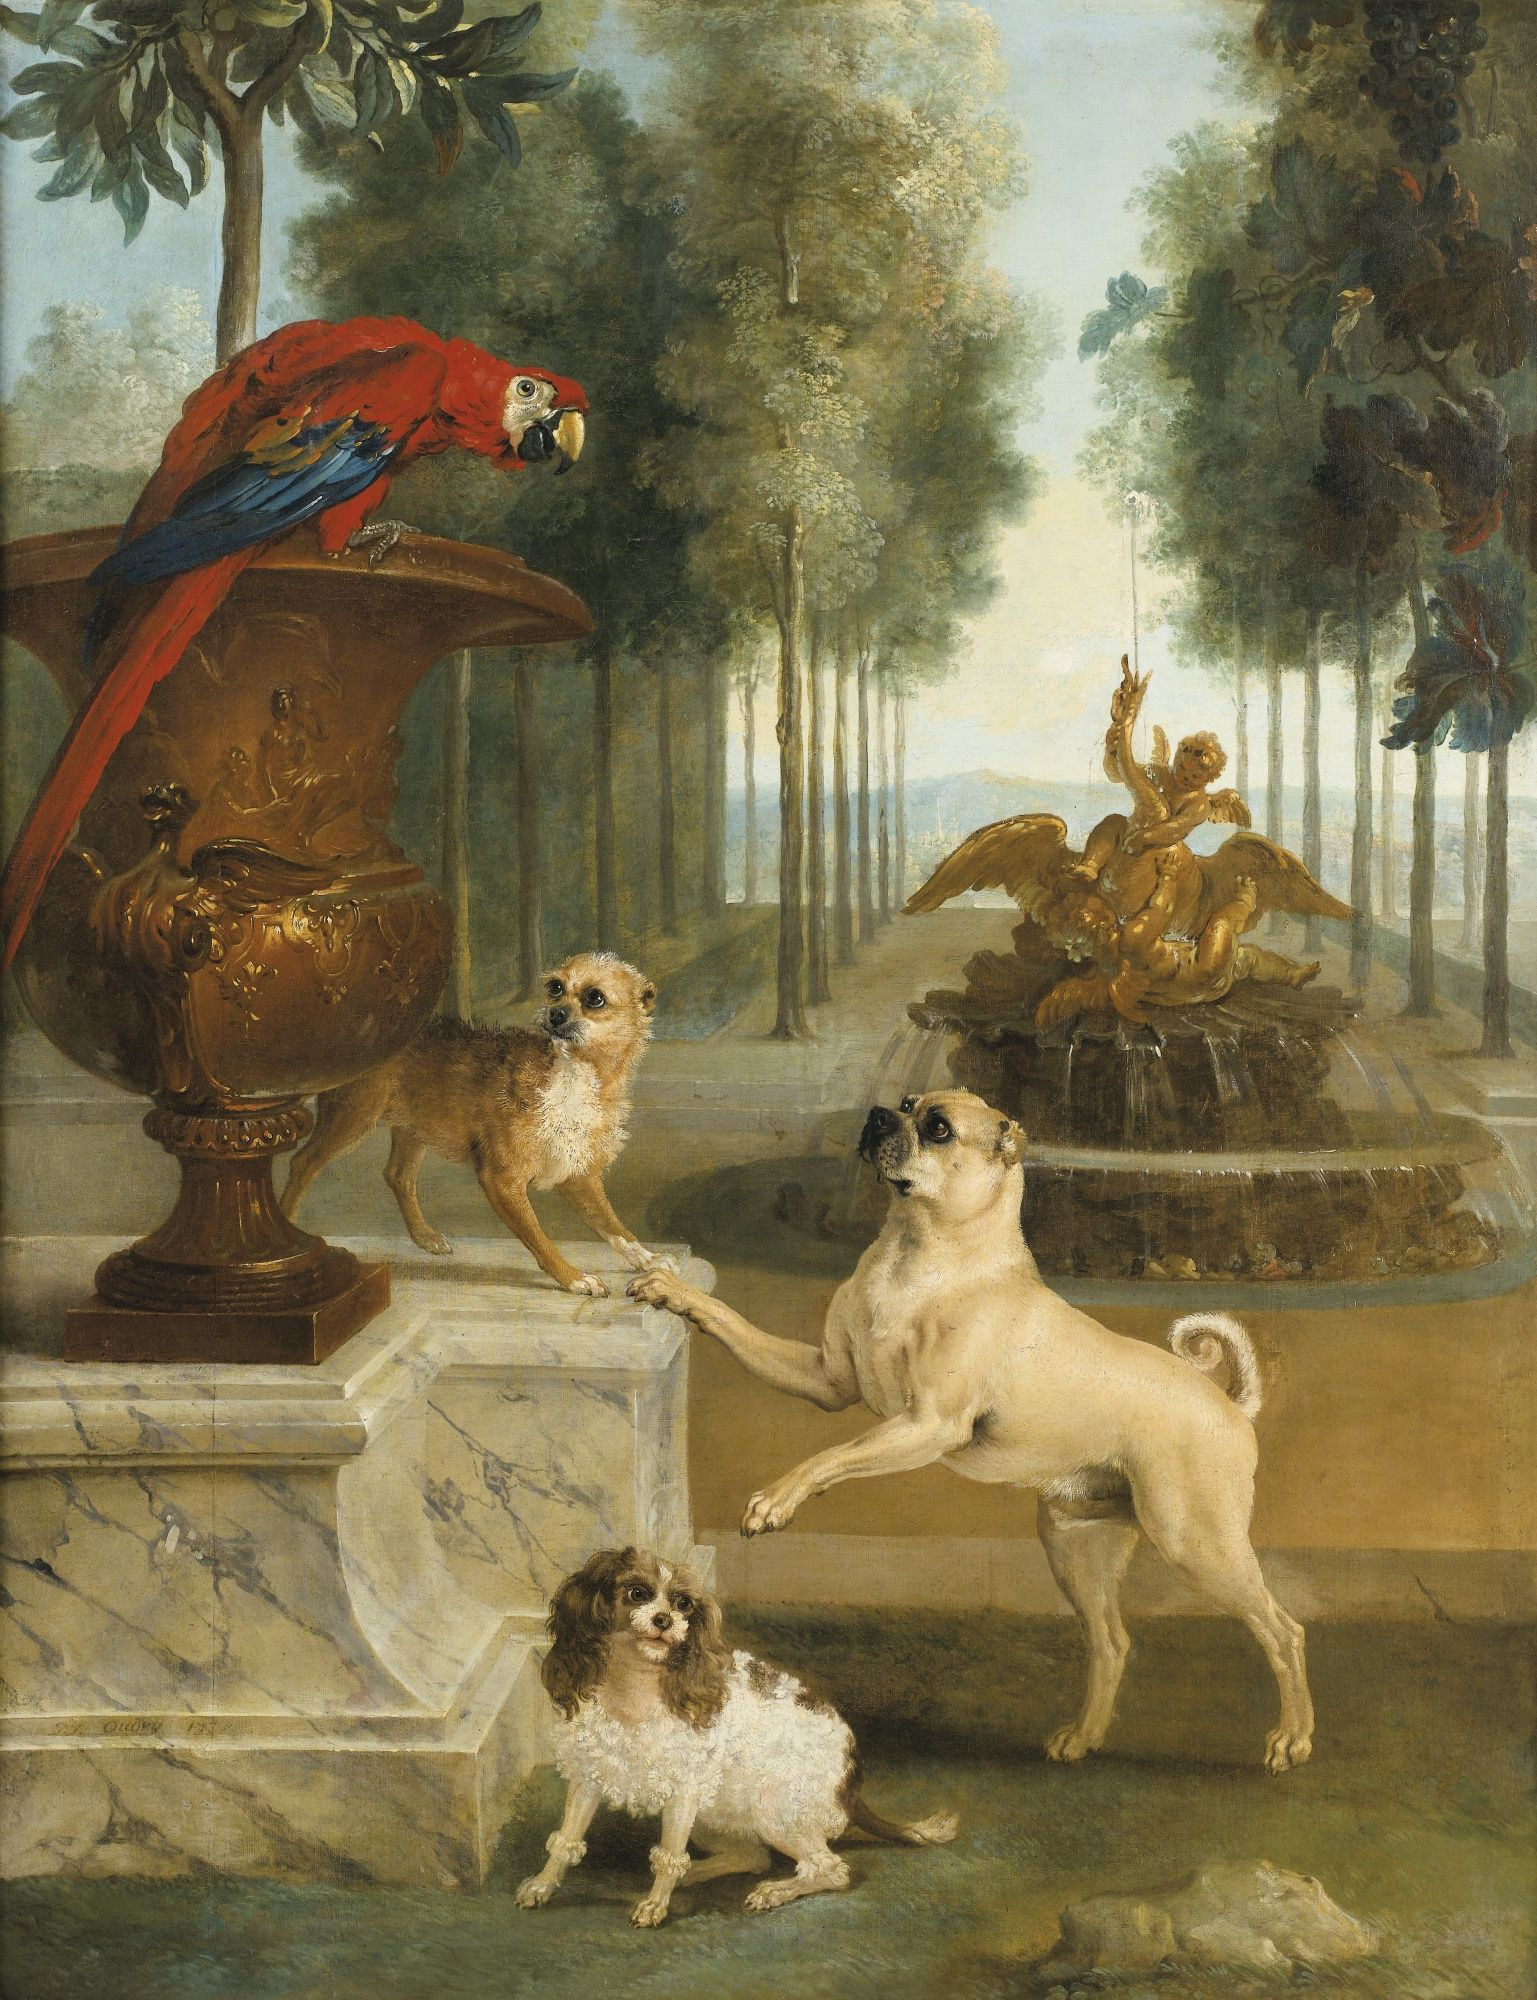 Kunstdrucke Online Jean-baptiste Oudry Paris 1686 - 1755 Beauvais Three Dogs